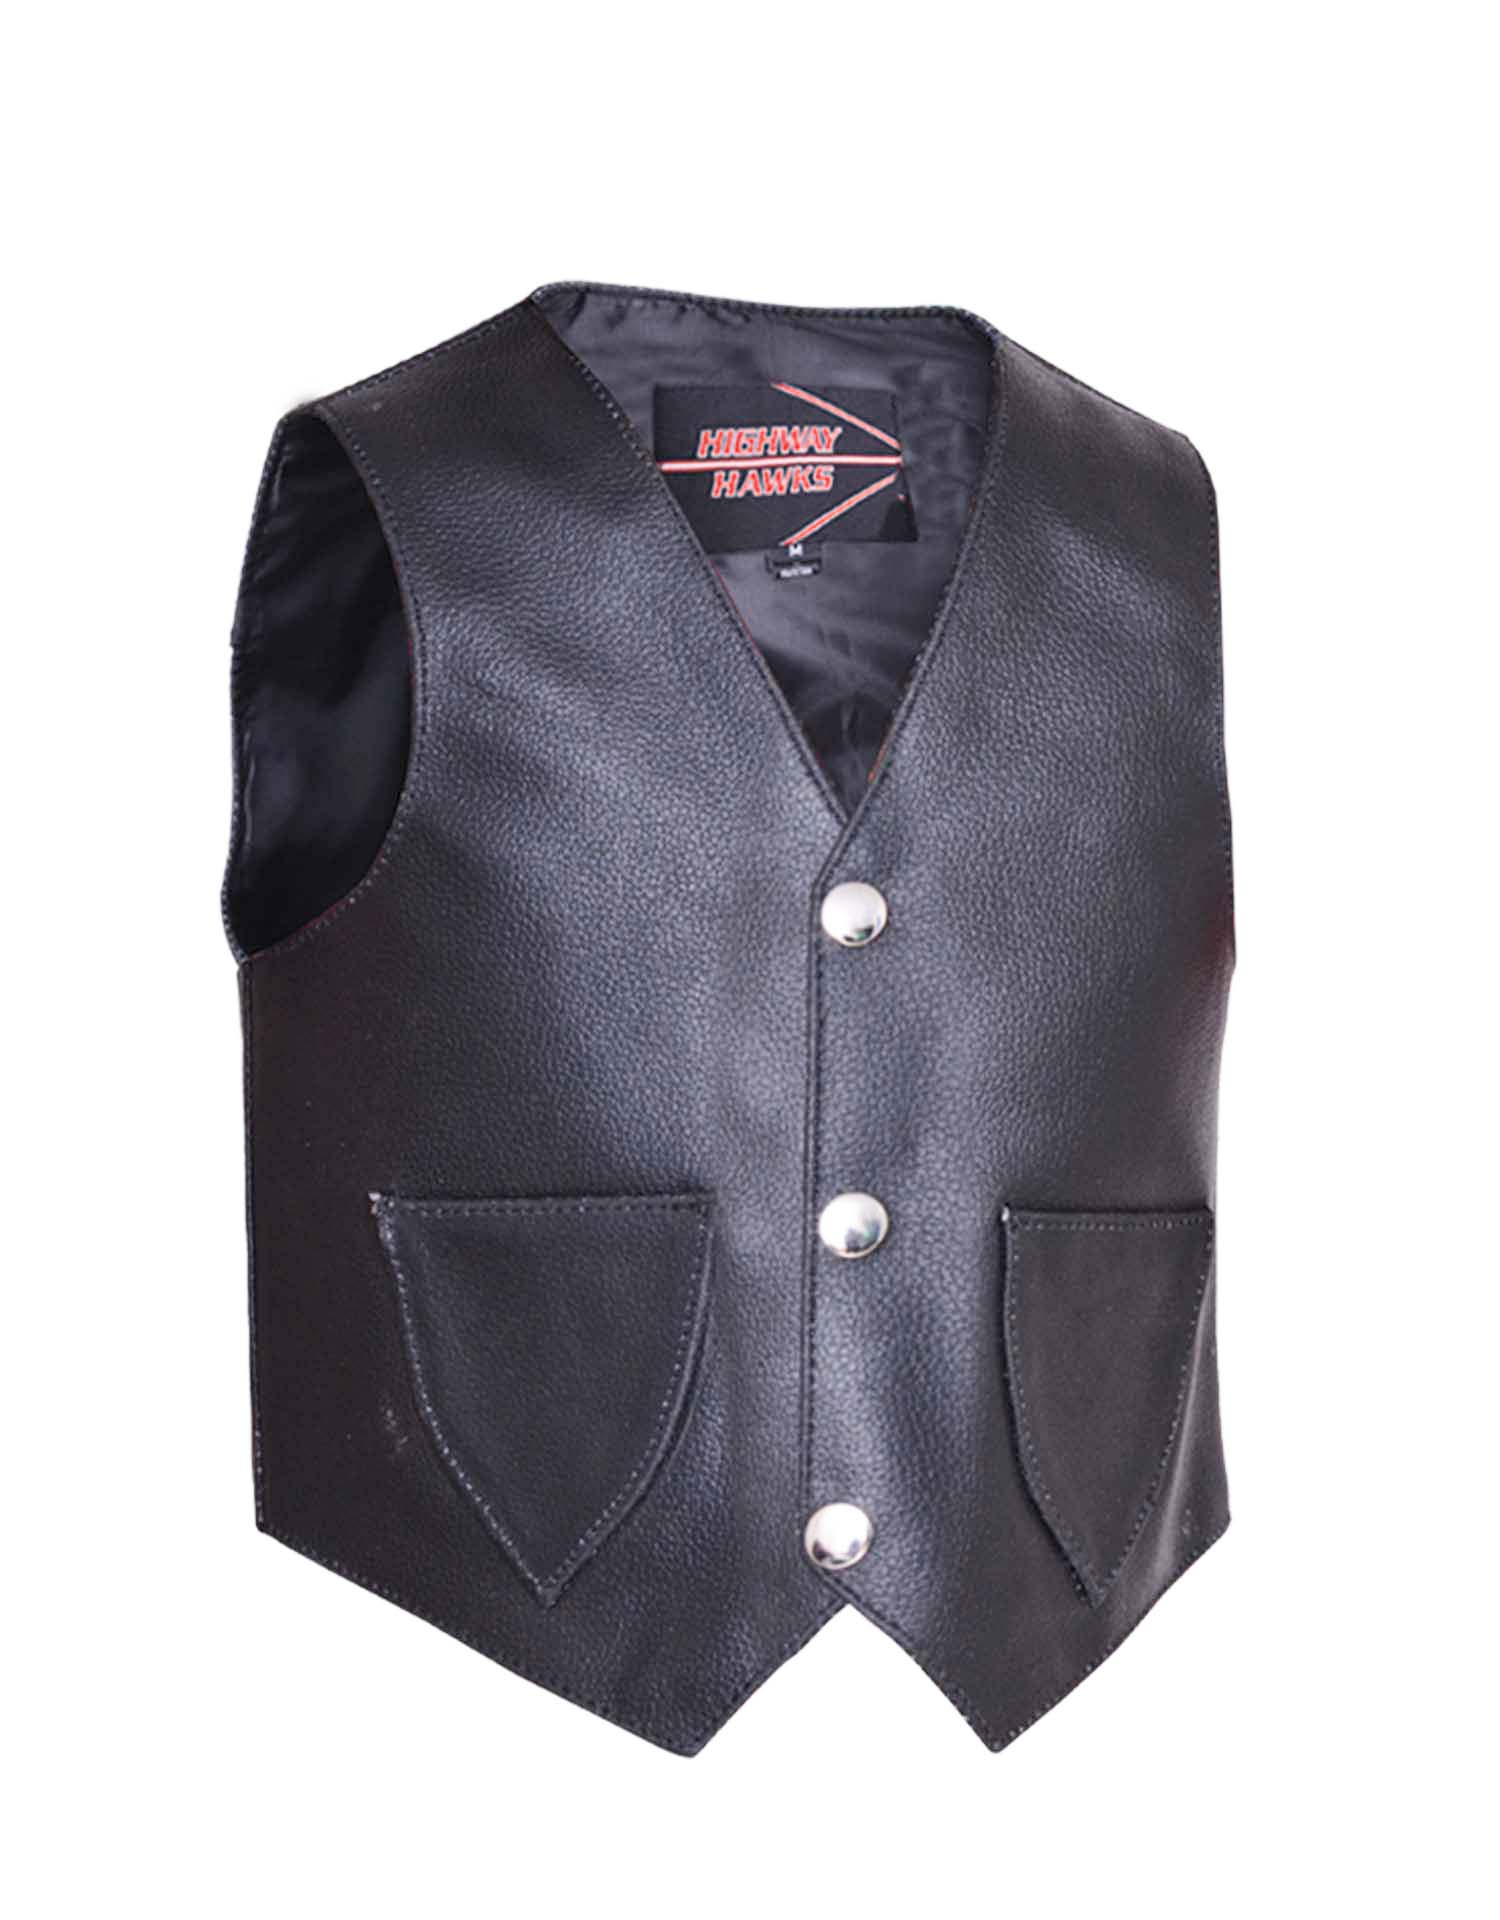 Toddler's Solid Side Black Leather Vest (Size: X-Small)